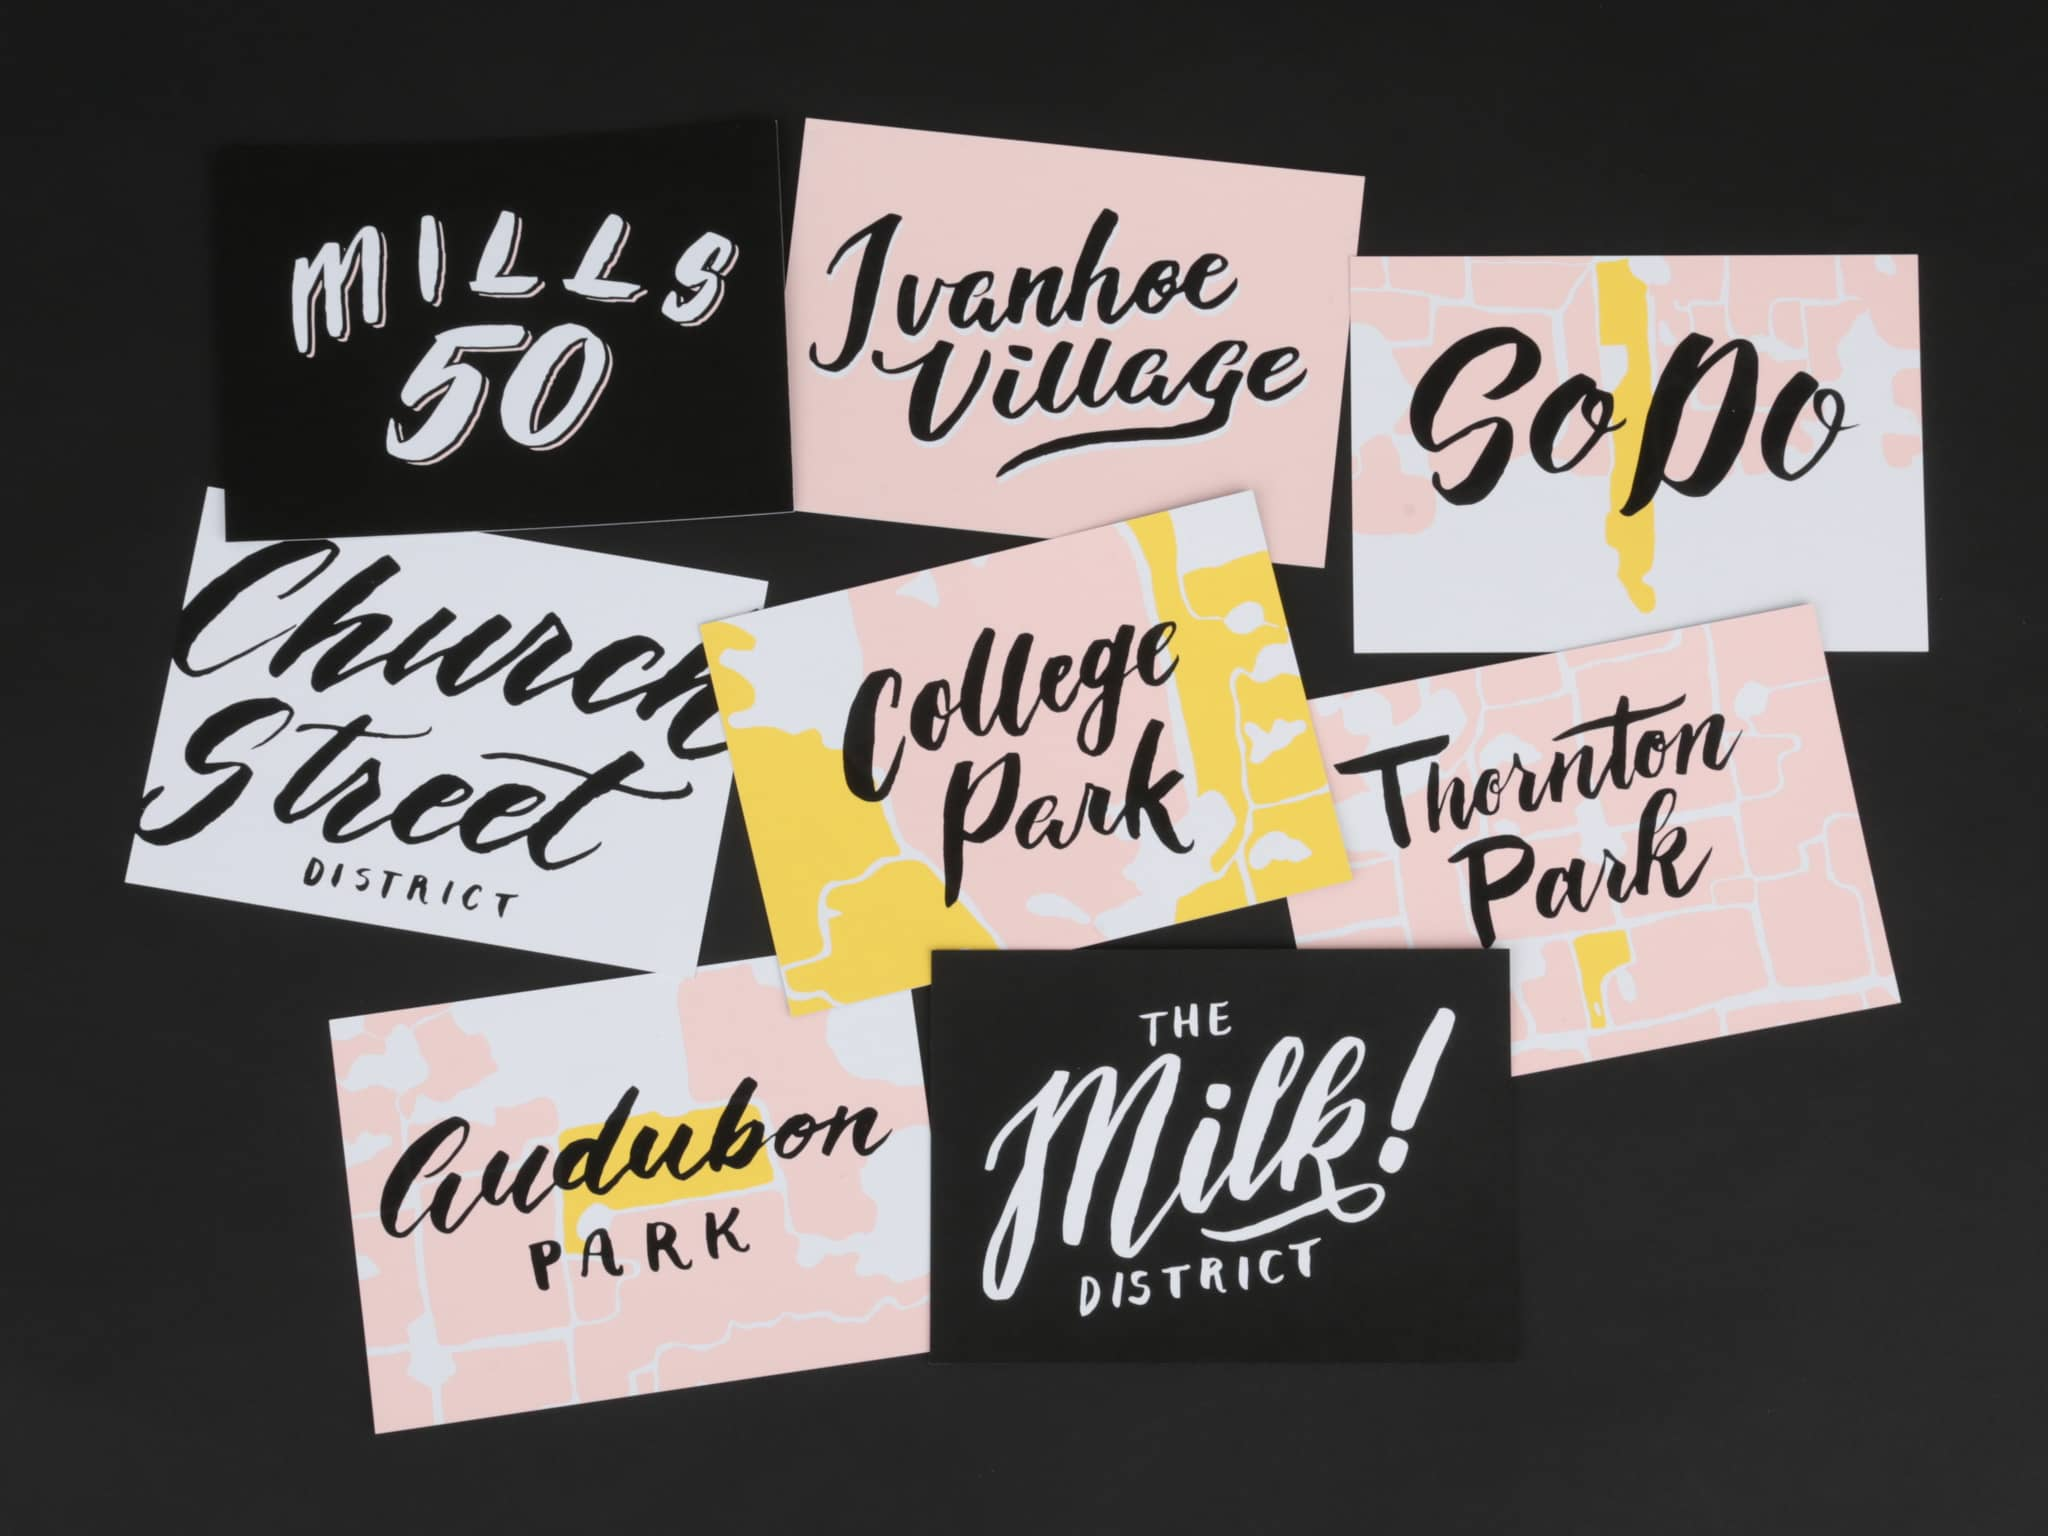 Orlando Main Street District hand lettered postcards by Hillery Powers